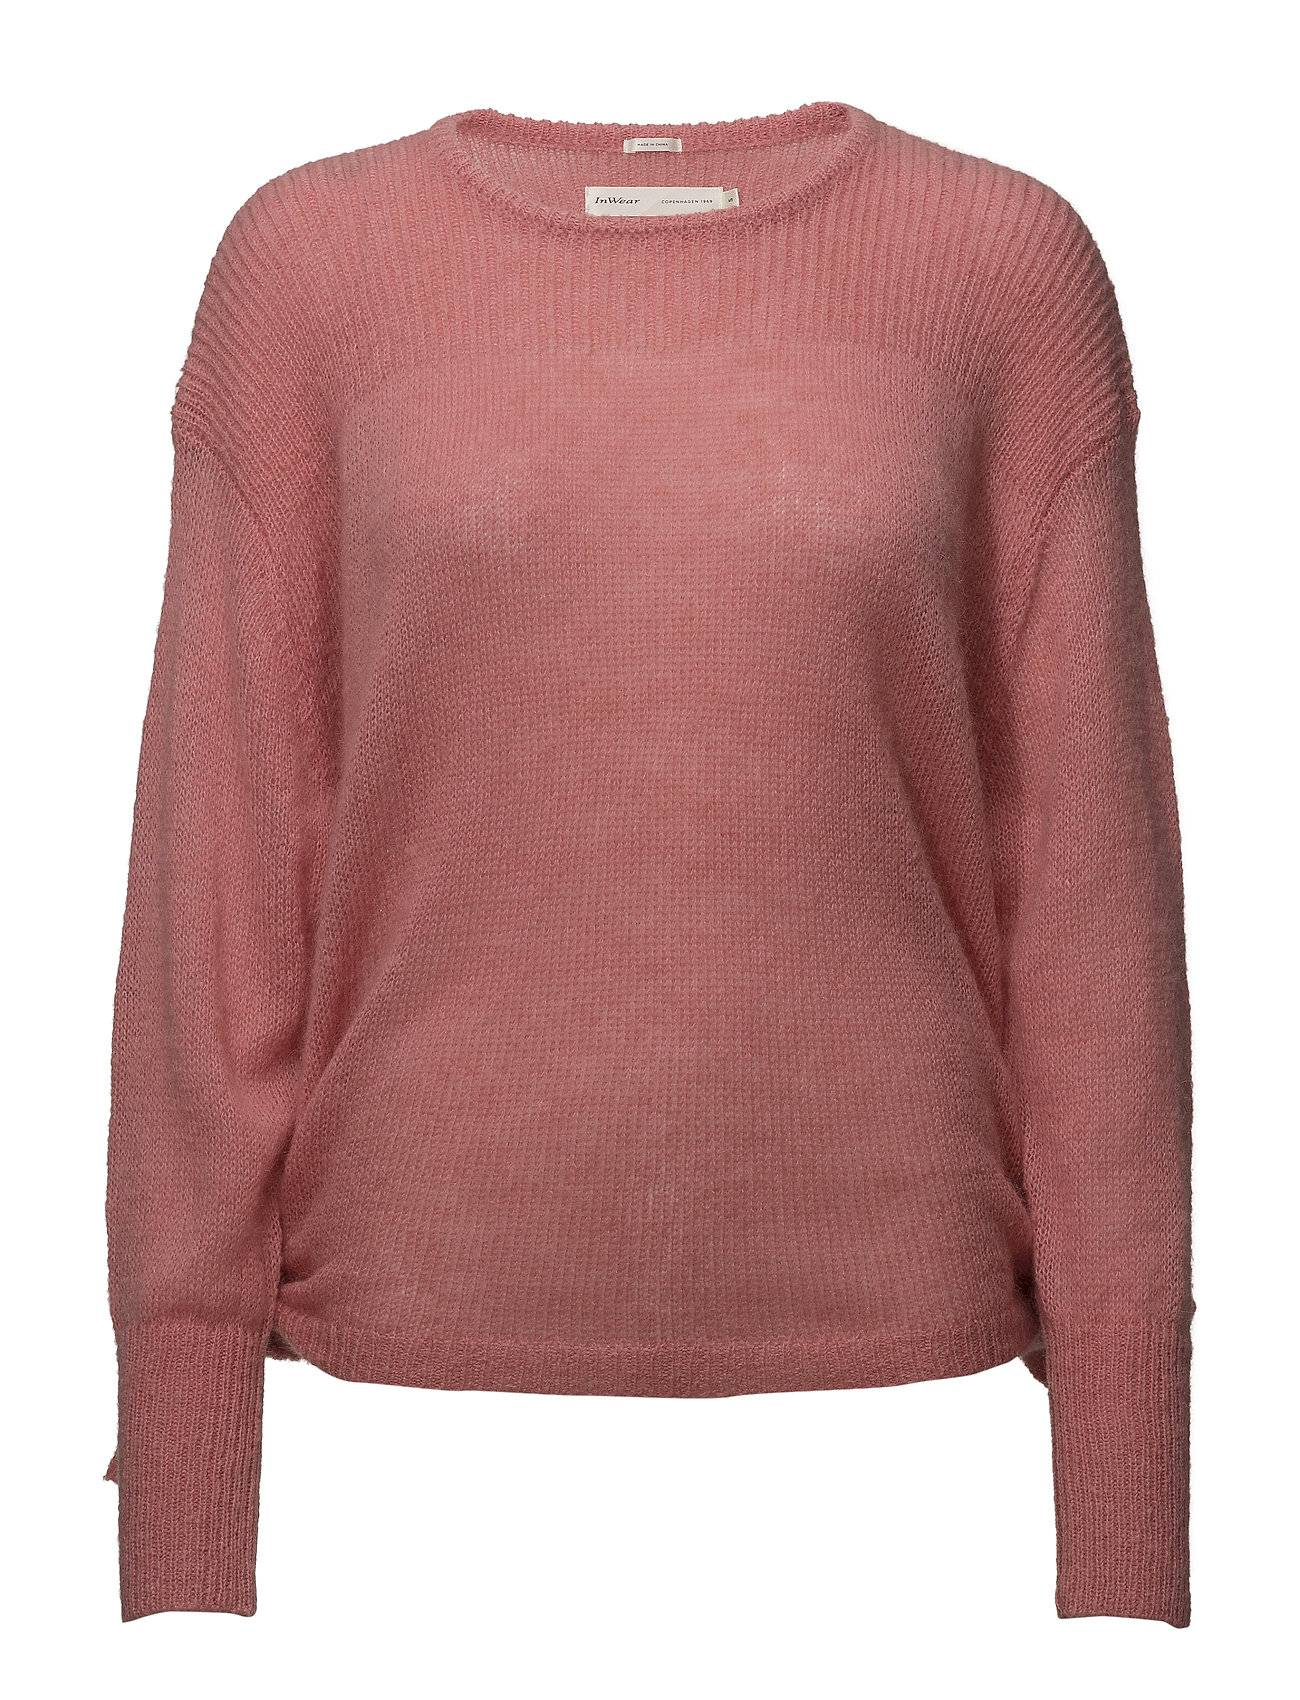 InWear Francis Pullover Knit